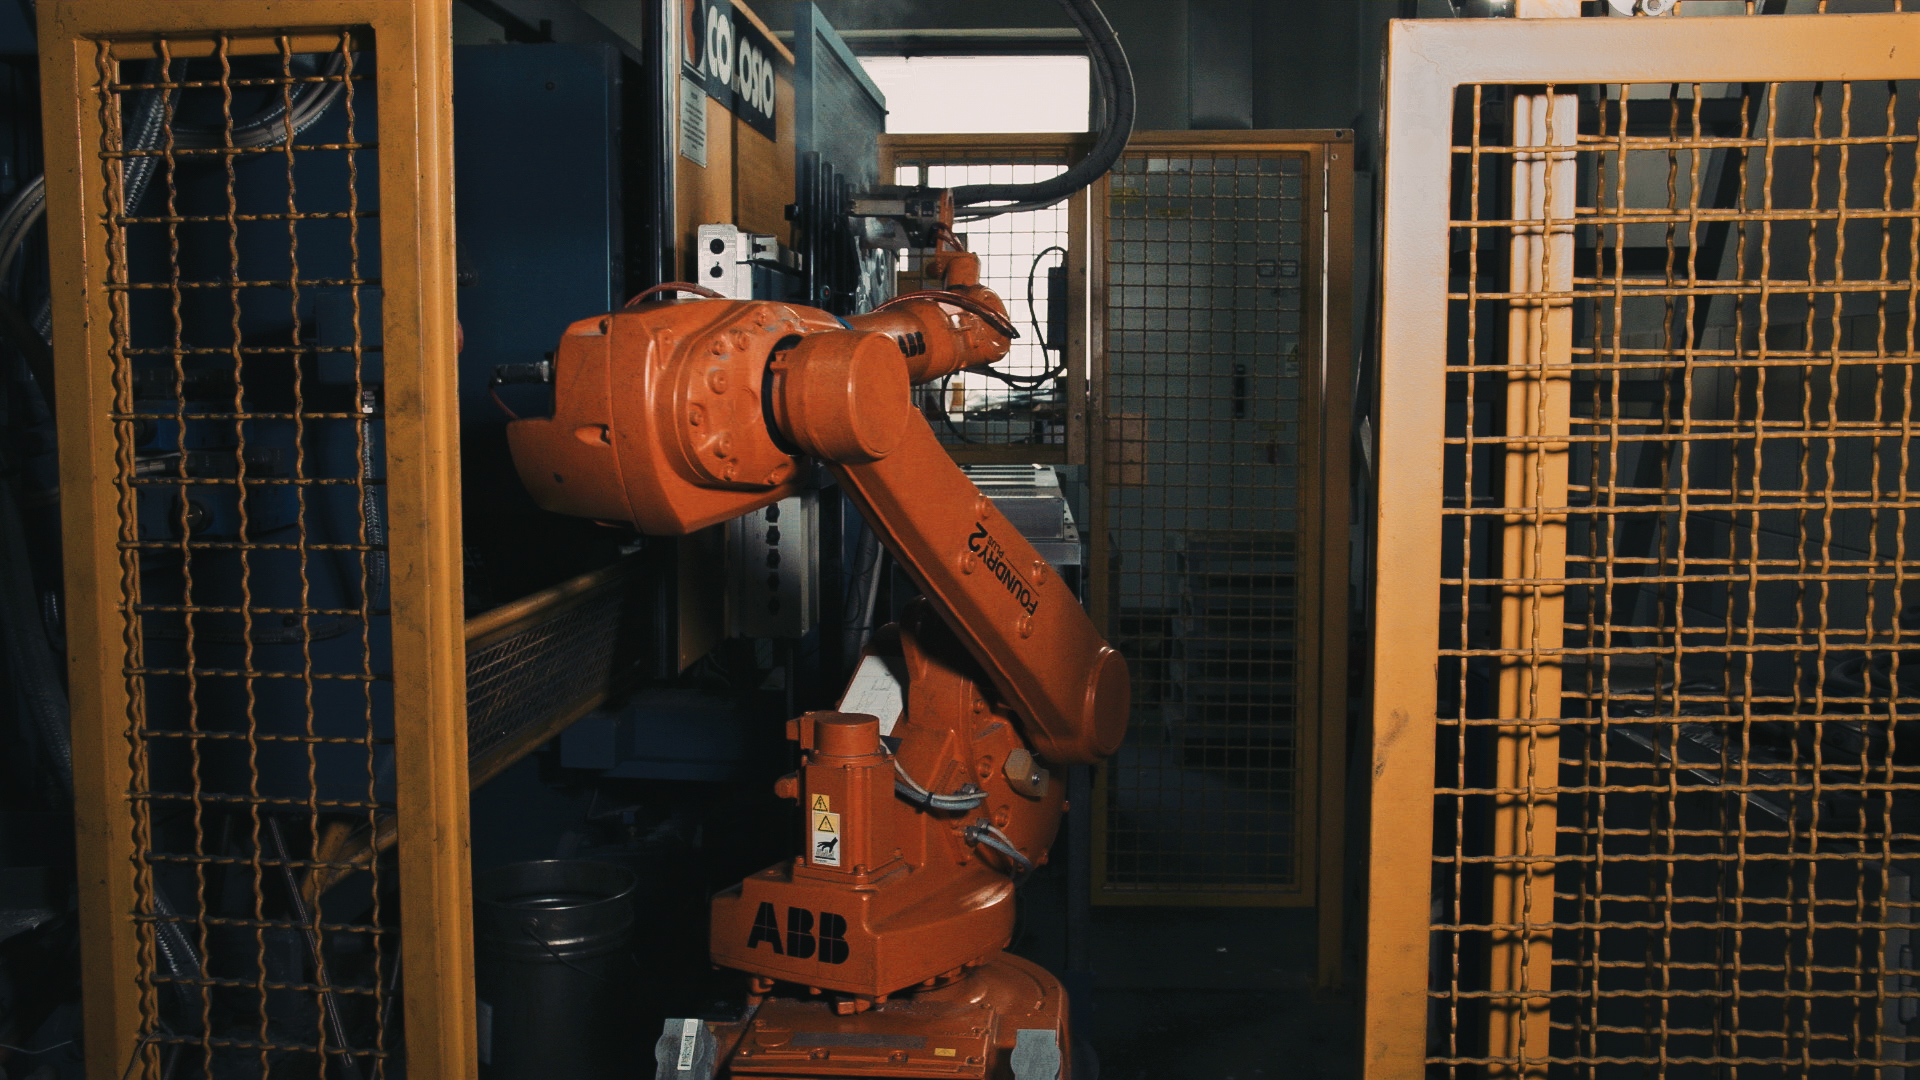 ABB robot – Foundry edition